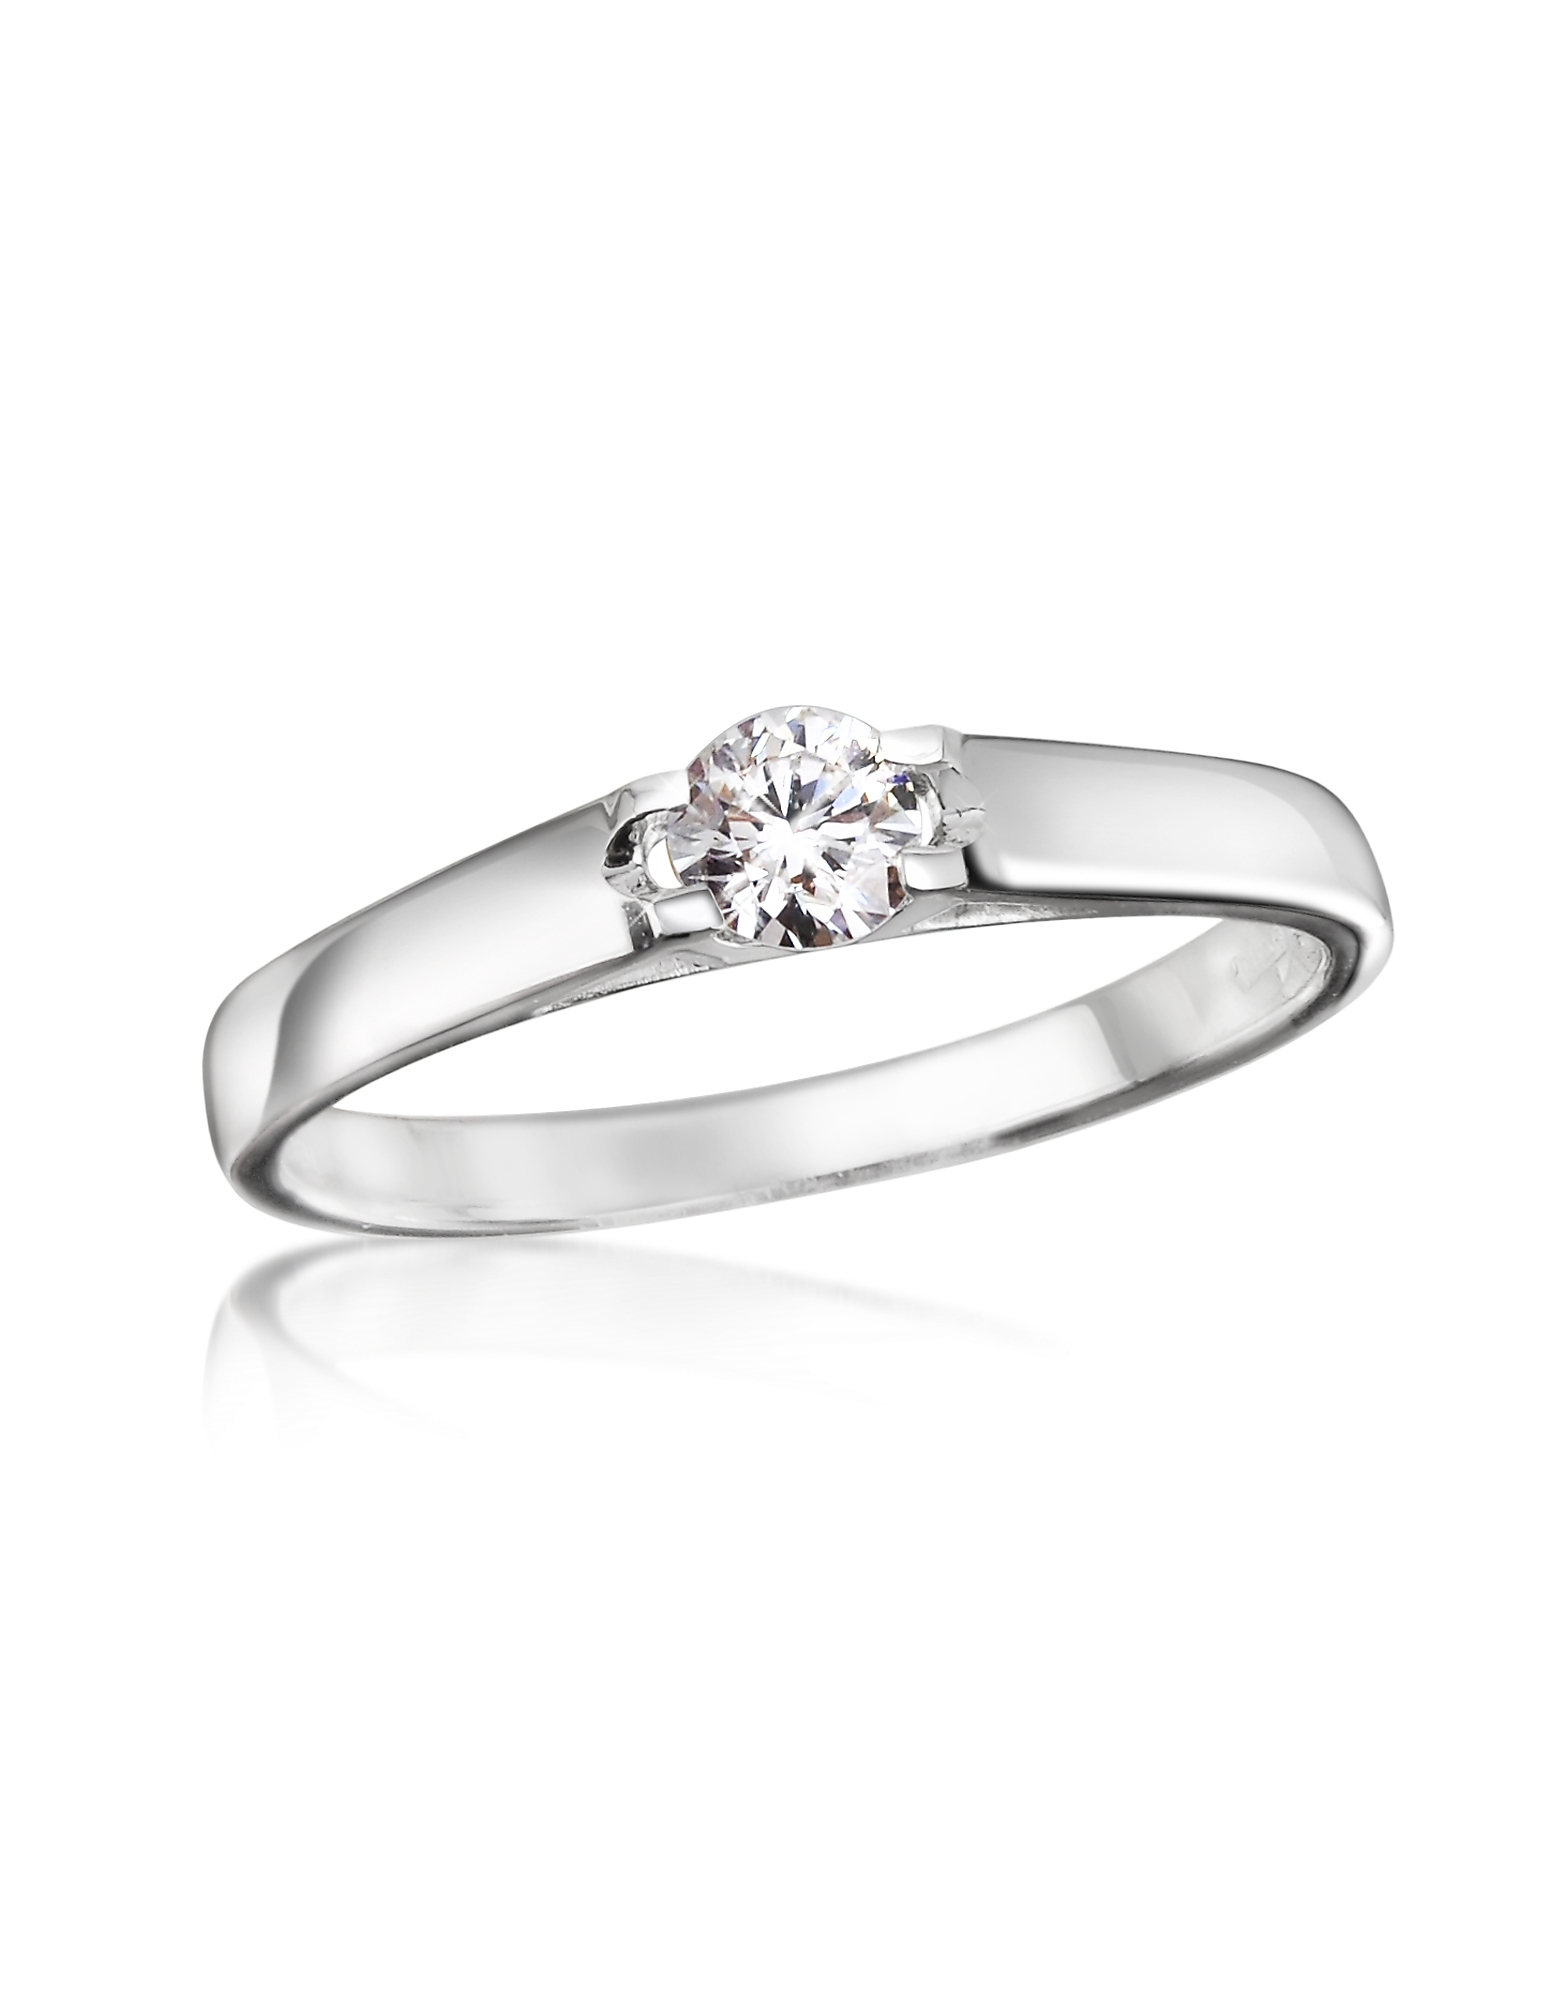 Forzieri Designer Rings, 0.24 ctw Diamond Solitaire Ring